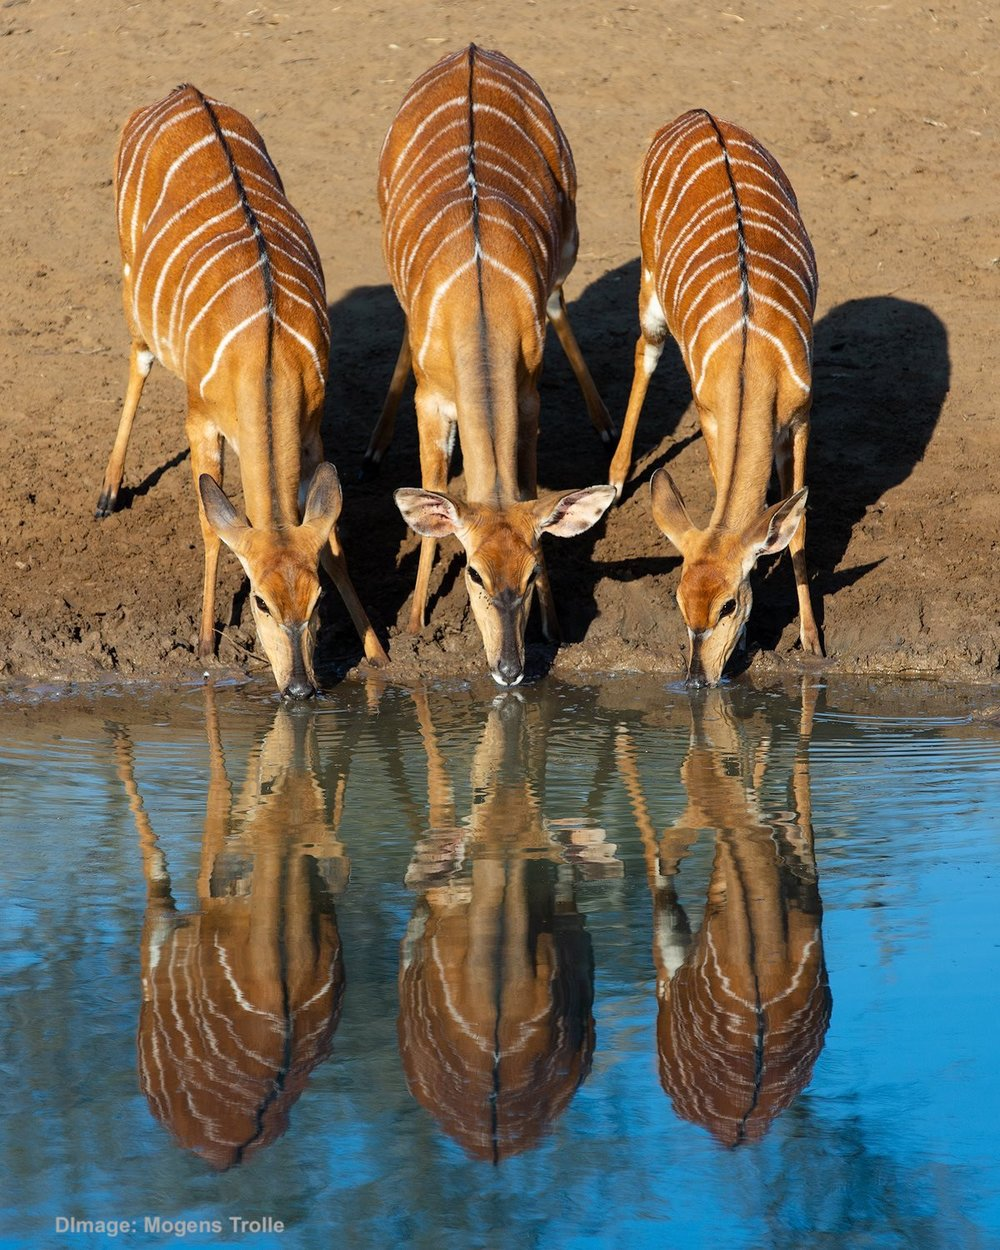 A TRIO OF FEMALE nyala stop to drink at one of the many water holes at this UNESCO Heritage site: uMkuze Game Park, KwaZulu-Natal. Image:  COURTESY OF ©MOGENS TROLLE.